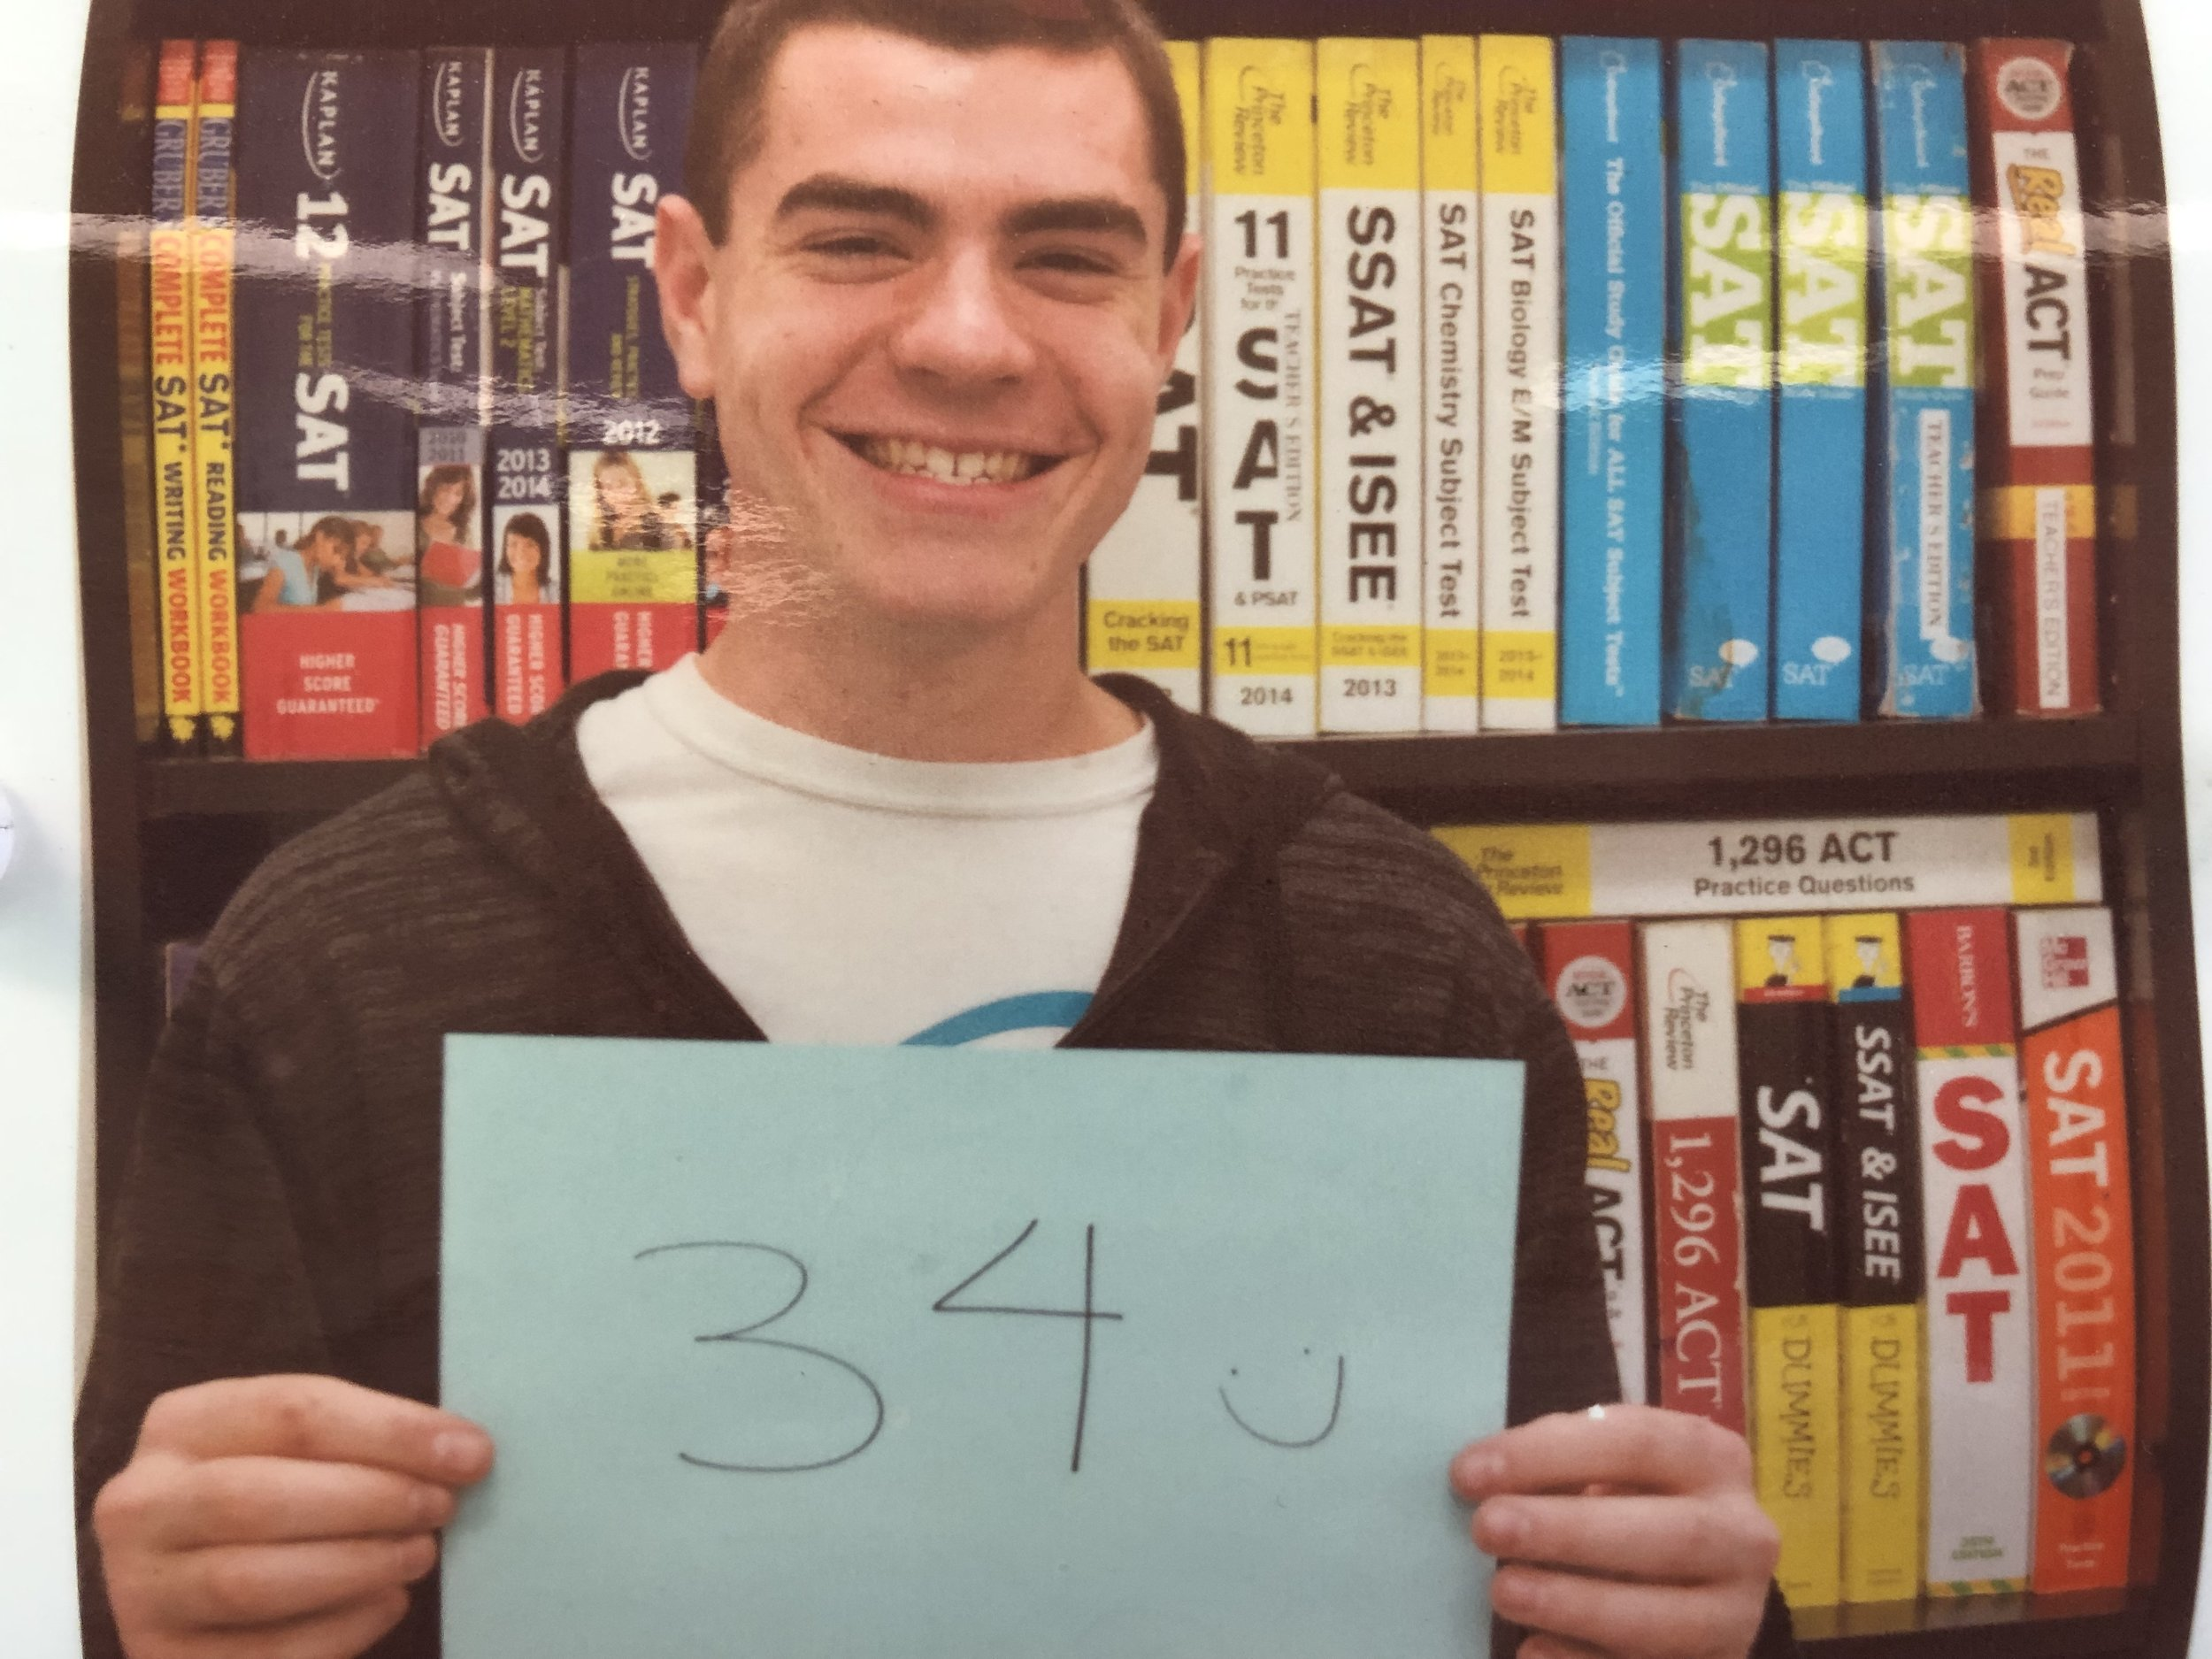 Ian improved from a 28 to a 34. He also went from a 670 to 800 on SAT 2 Math Level 2!